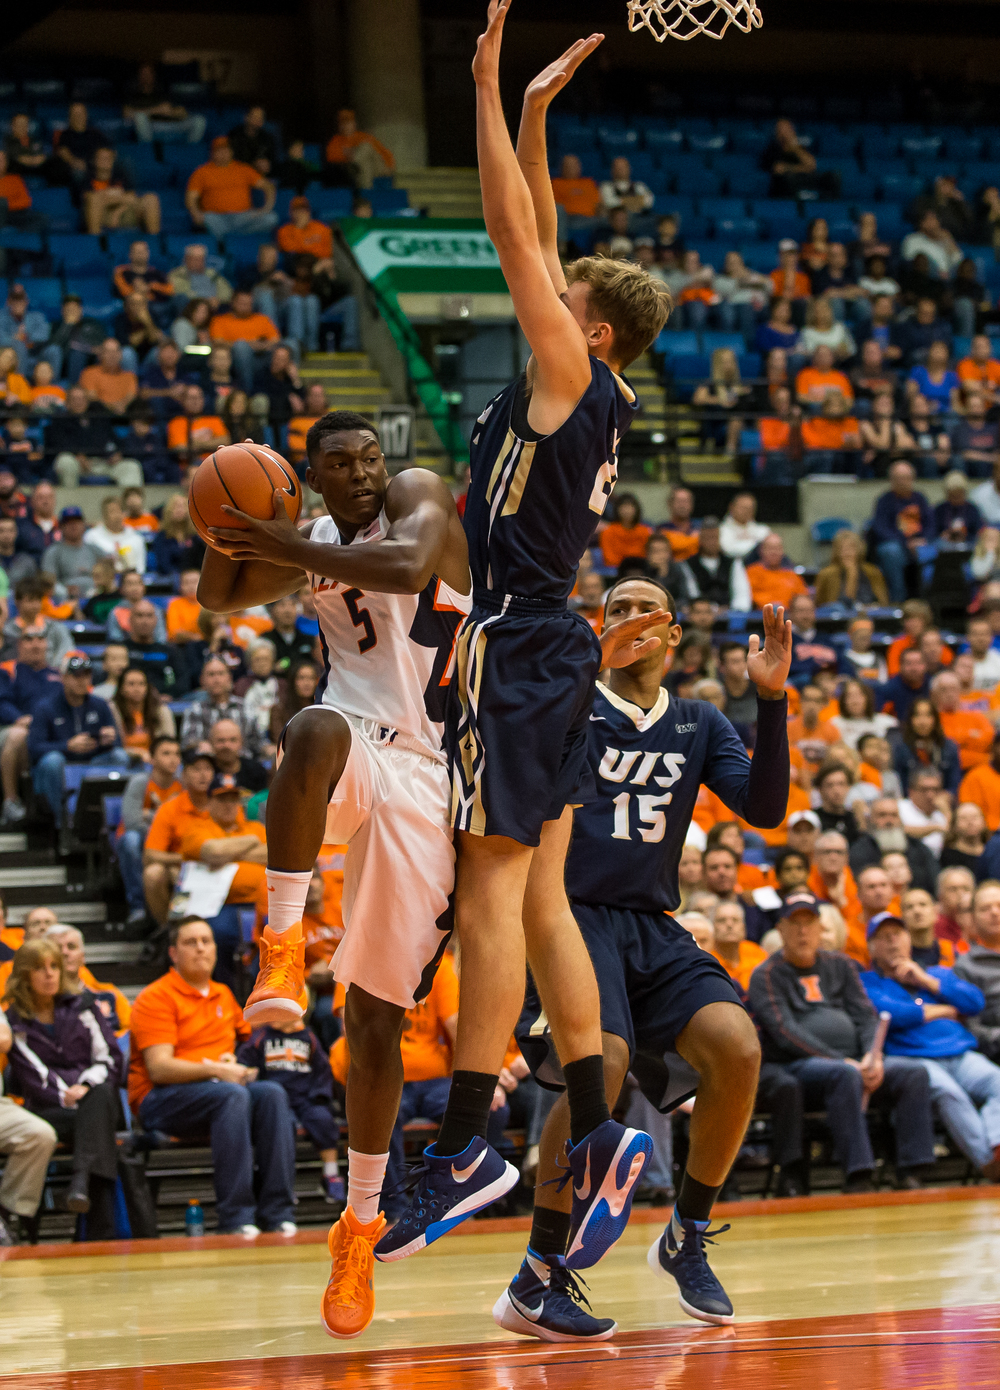 University of Illinois' Jalen Coleman-Lands (5) collides with University of Illinois Springfield's Zach Steinberg (21) underneath the basket as he looks for an outlet pass in the first half during an exhibition game at the Prairie Capital Convention Center, Sunday, Nov. 8, 2015, in Springfield, Ill. Justin L. Fowler/The State Journal-Register